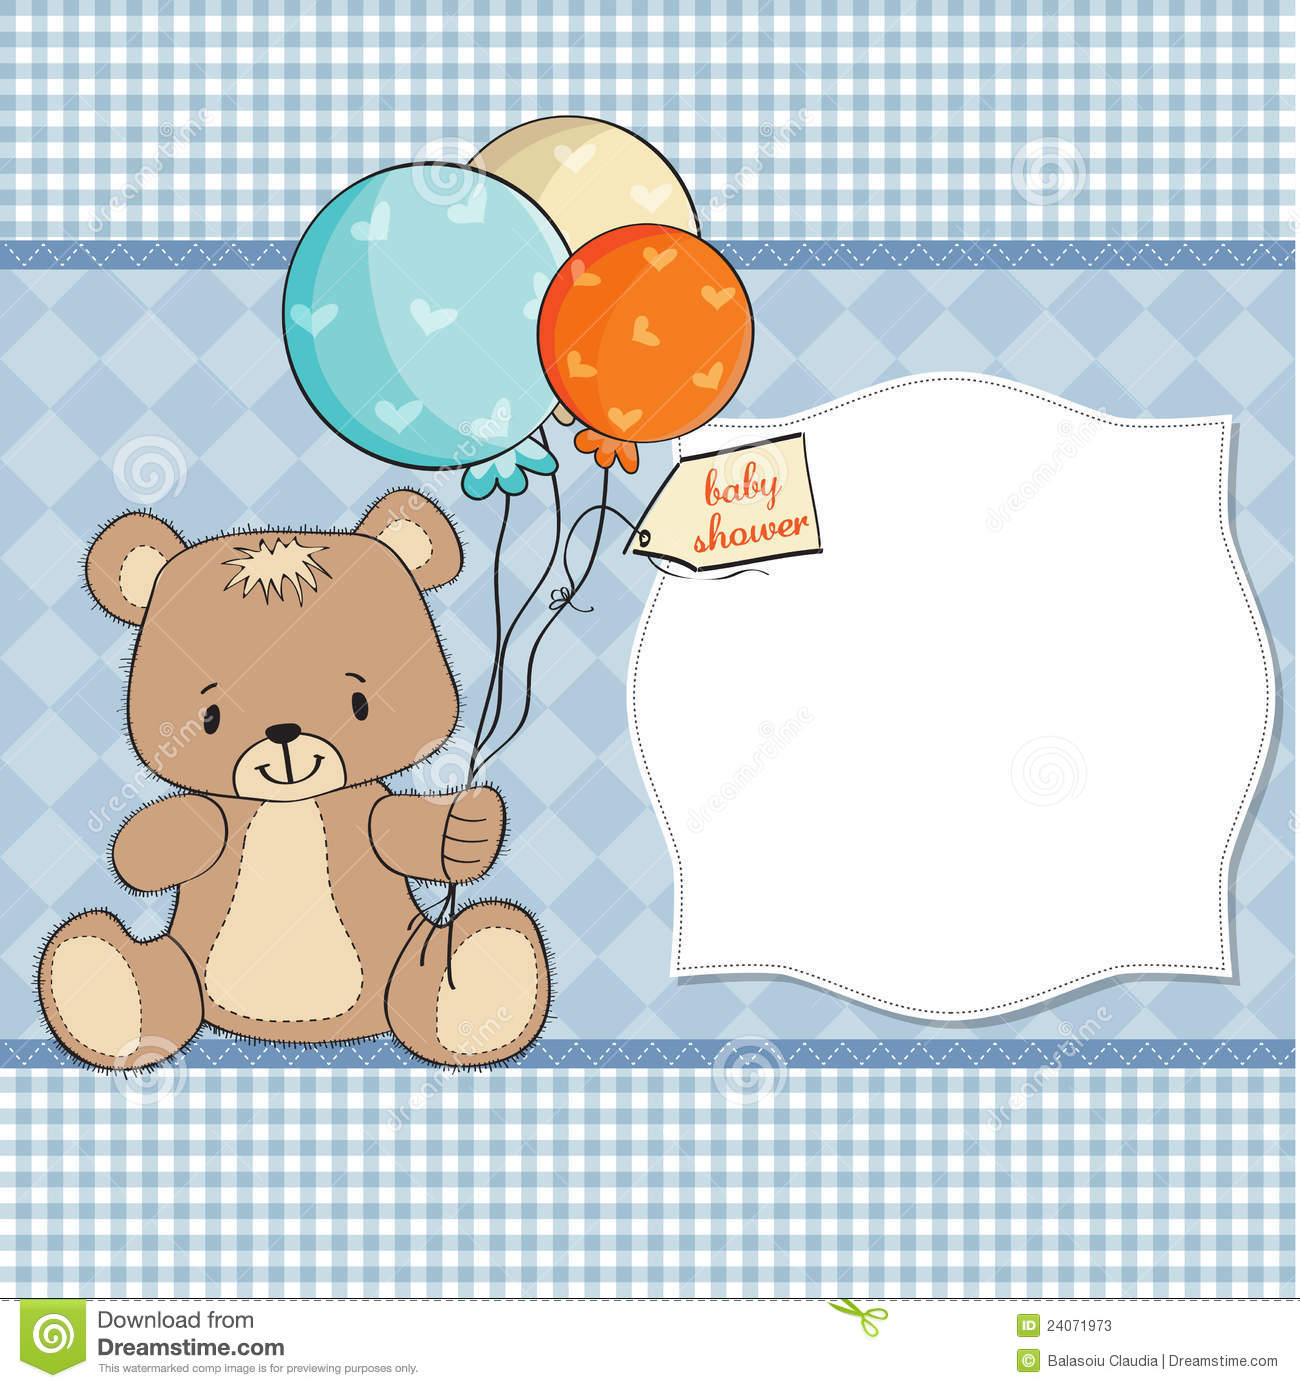 clipart for baby shower cards - photo #16